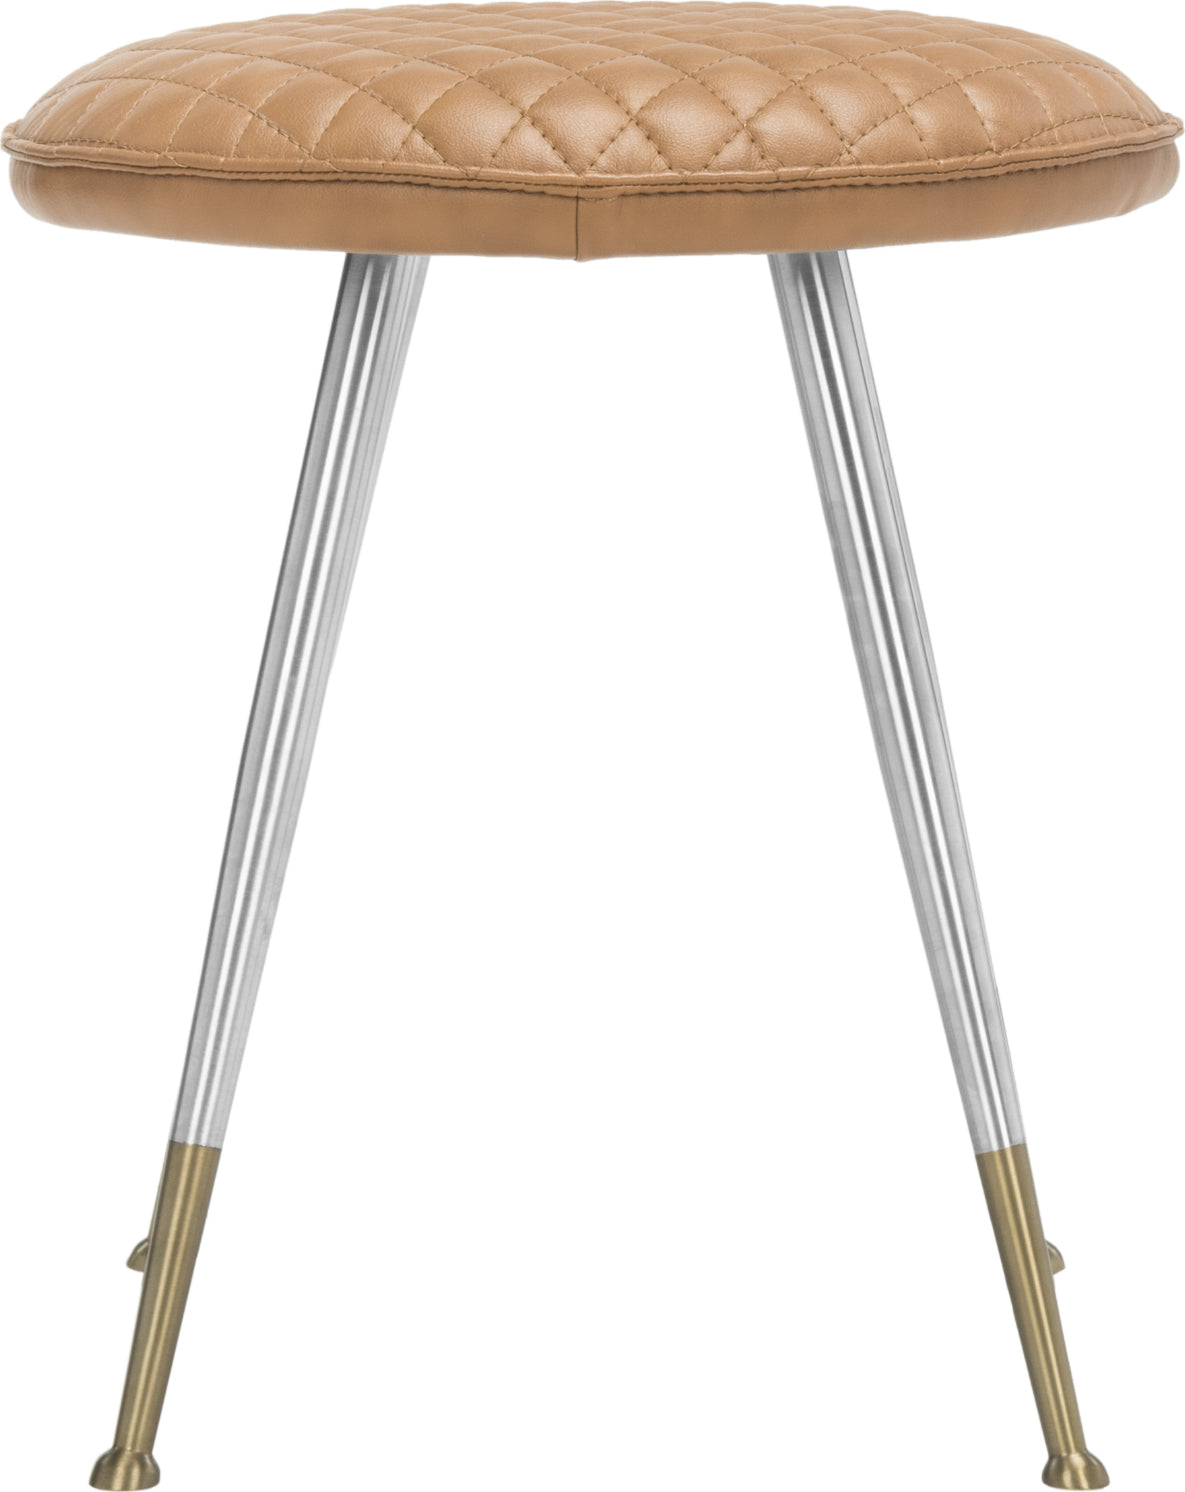 Safavieh Brinley 30''H Mid Century Modern Stool Mustard and Silver Furniture main image